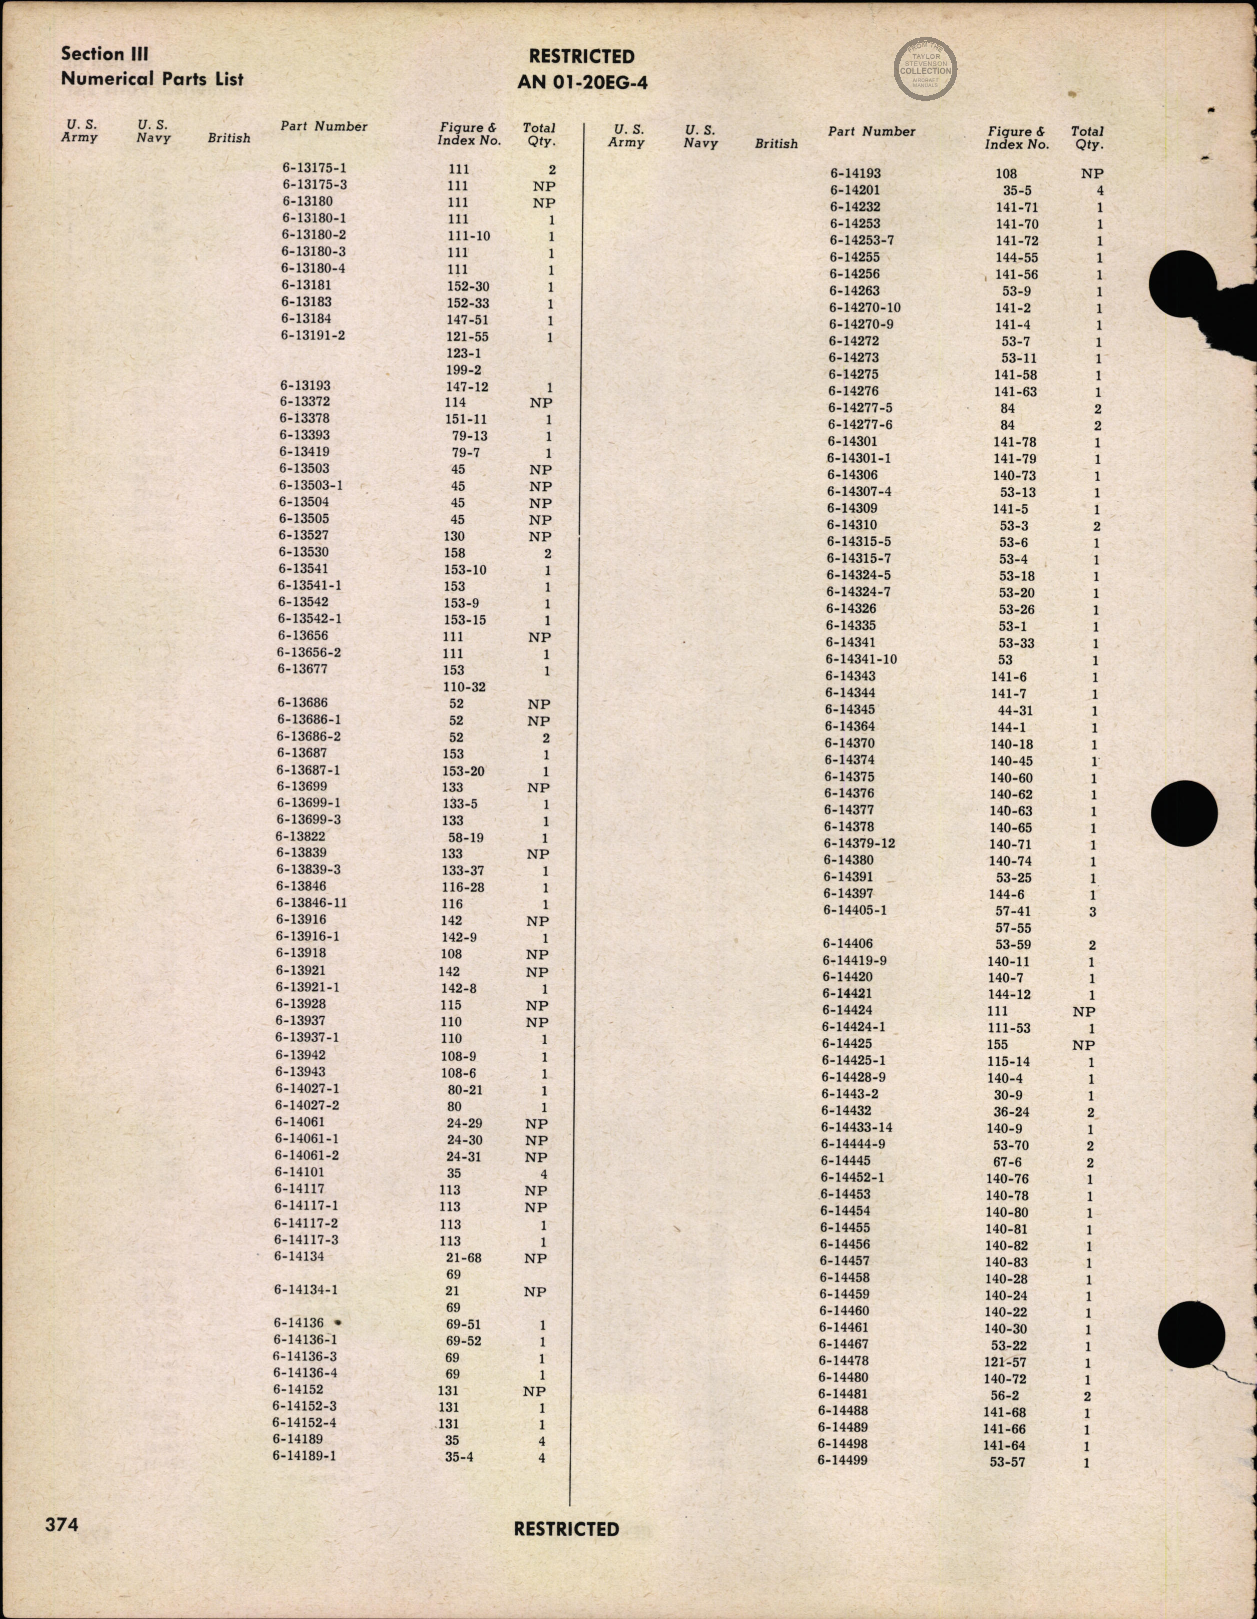 Sample page 380 from AirCorps Library document: Parts Catalog - B-17